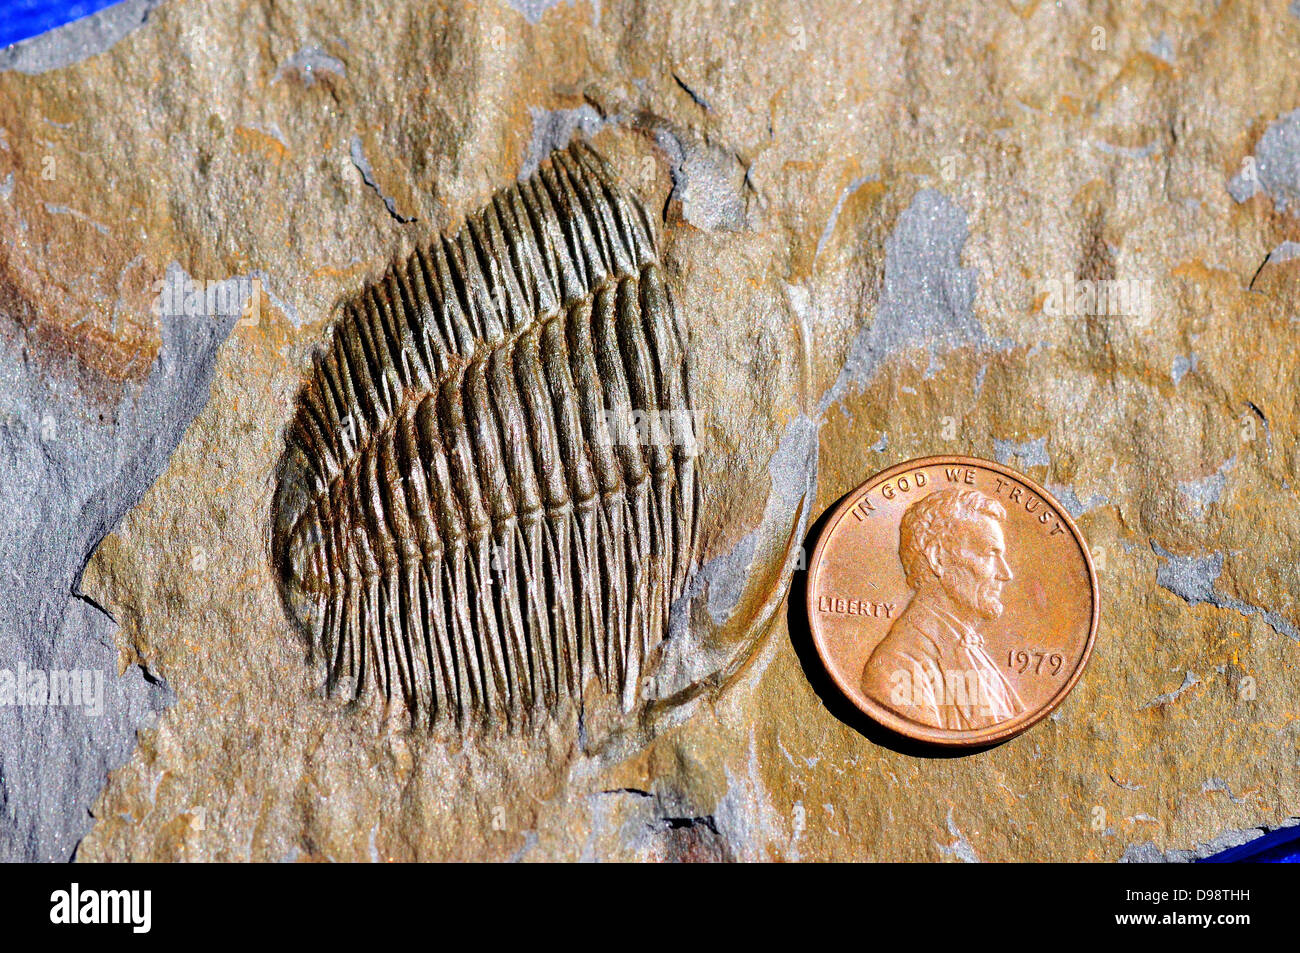 Fossil trilobite Angelina Sedgwickii of Ordovician age. Deformed fossil shown strain in the rock under shear stress. - Stock Image